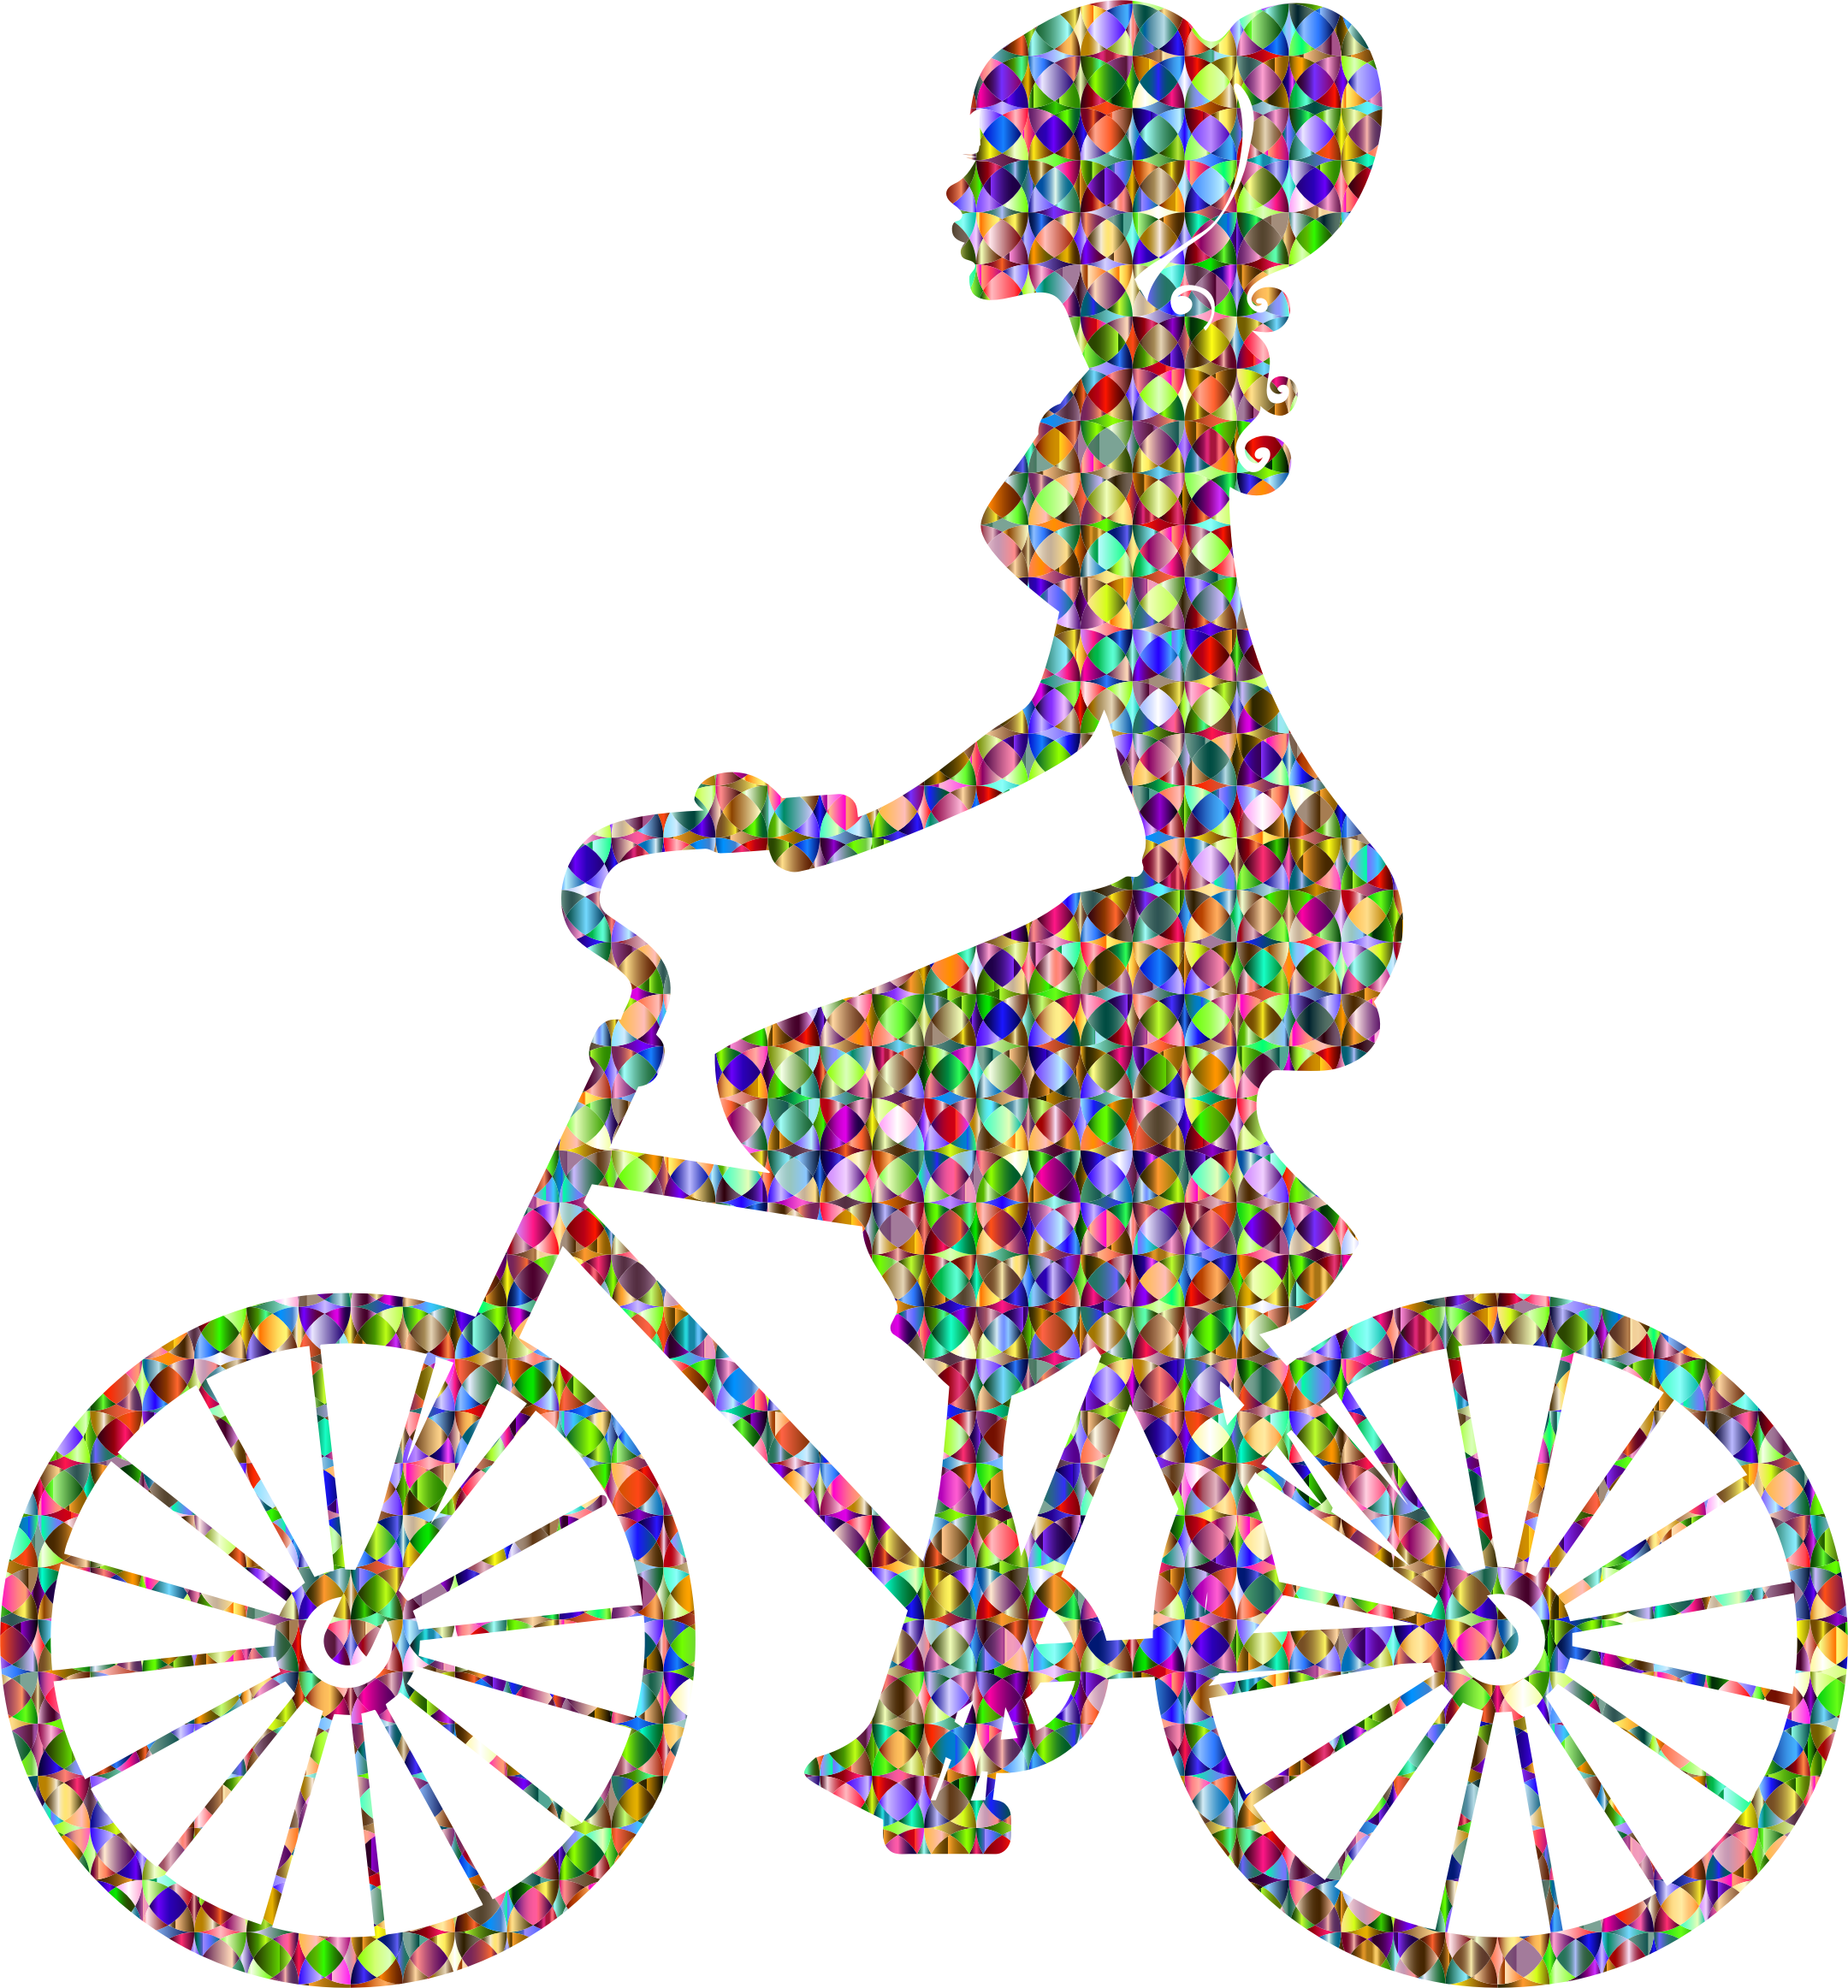 Chromatic Bejeweled Girl On Bike by GDJ